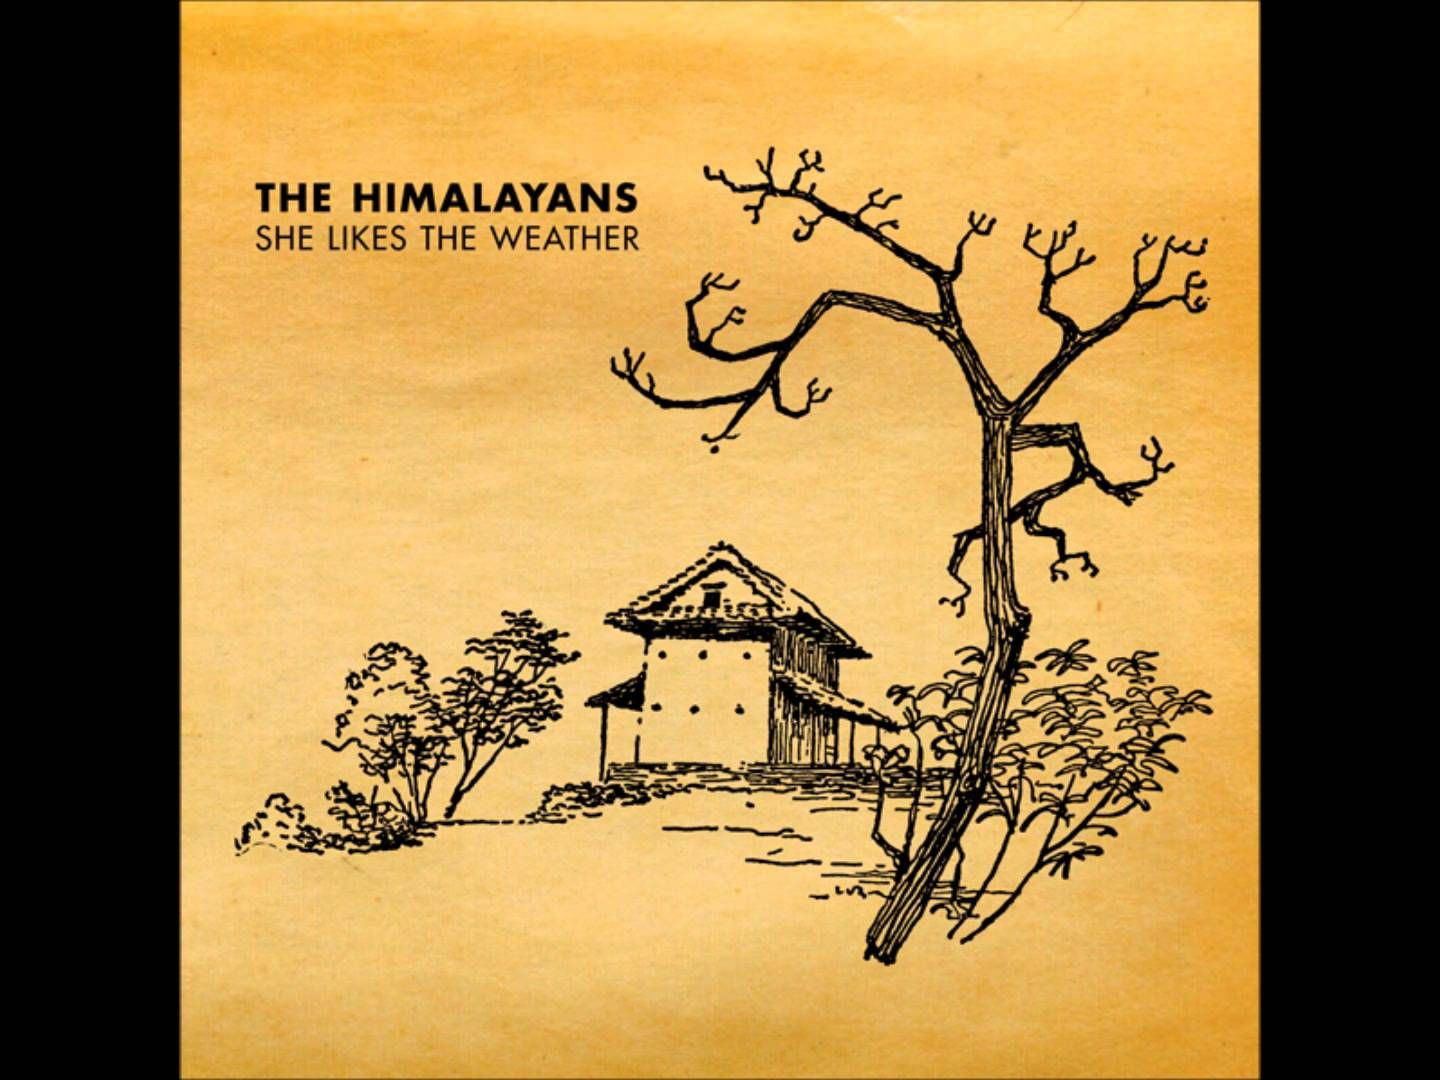 The Himalayans